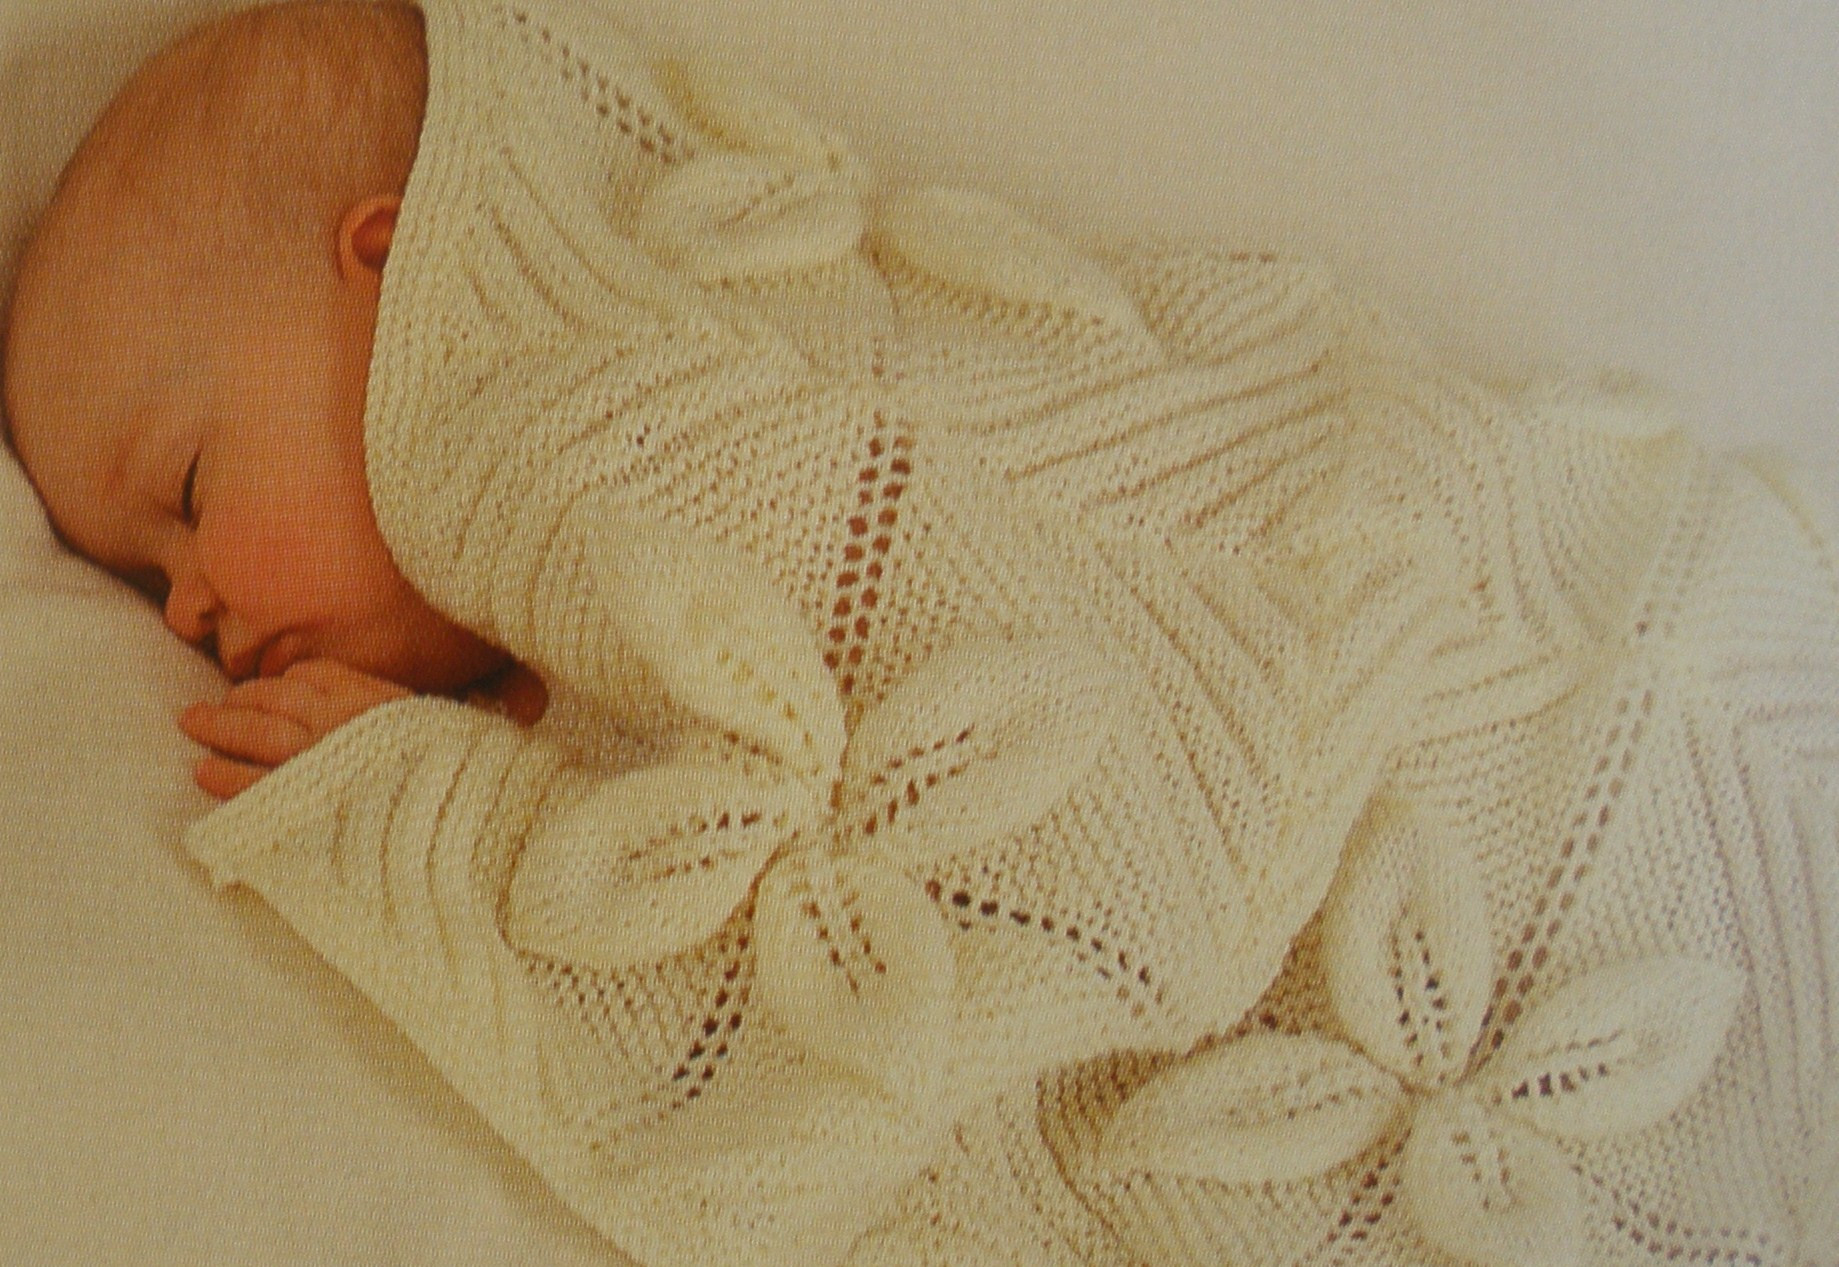 Free Knitted Baby Afghan Patterns Inspirational Free Baby Blanket Knitting Patterns 8 Ply Of Superb 43 Pics Free Knitted Baby Afghan Patterns